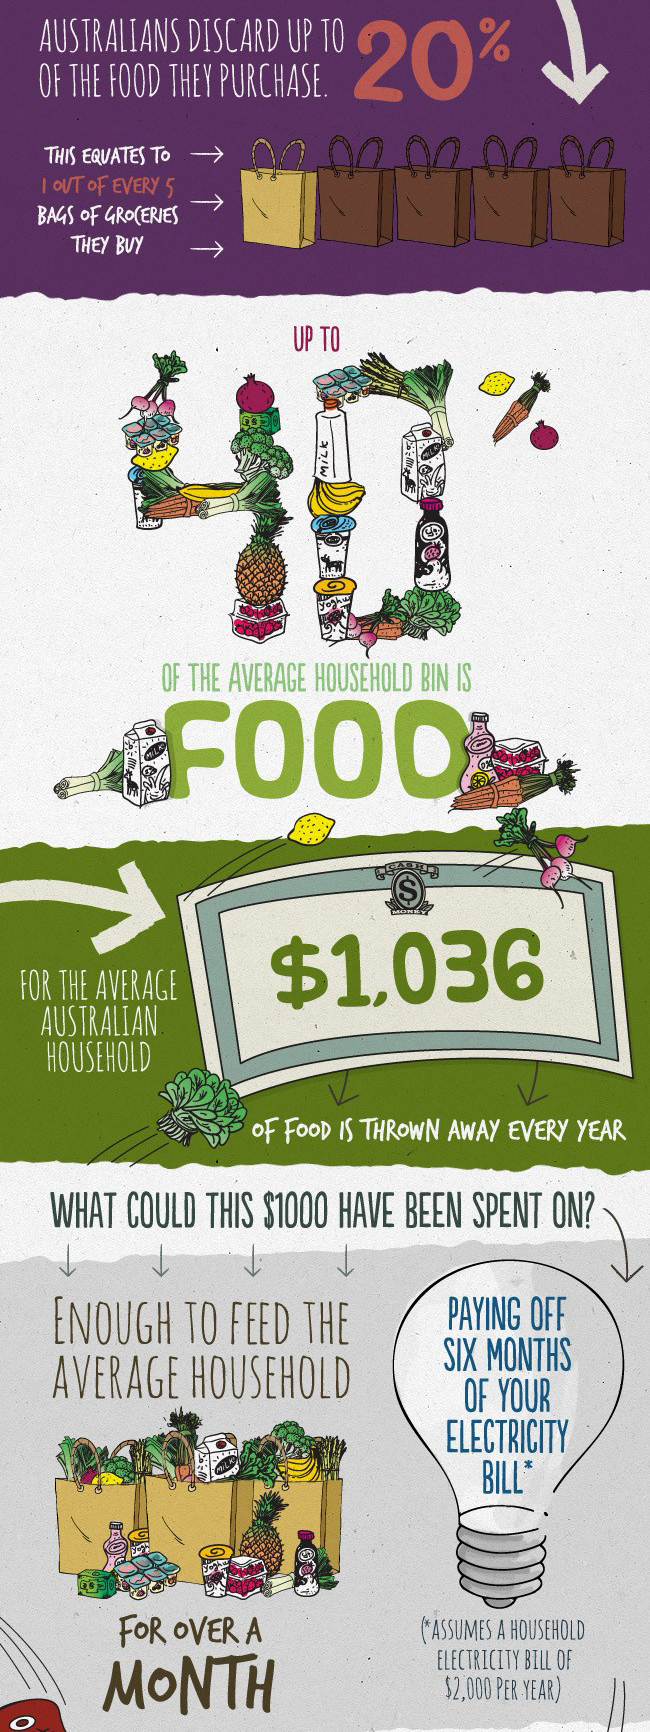 foodwaste-infographic2.jpg